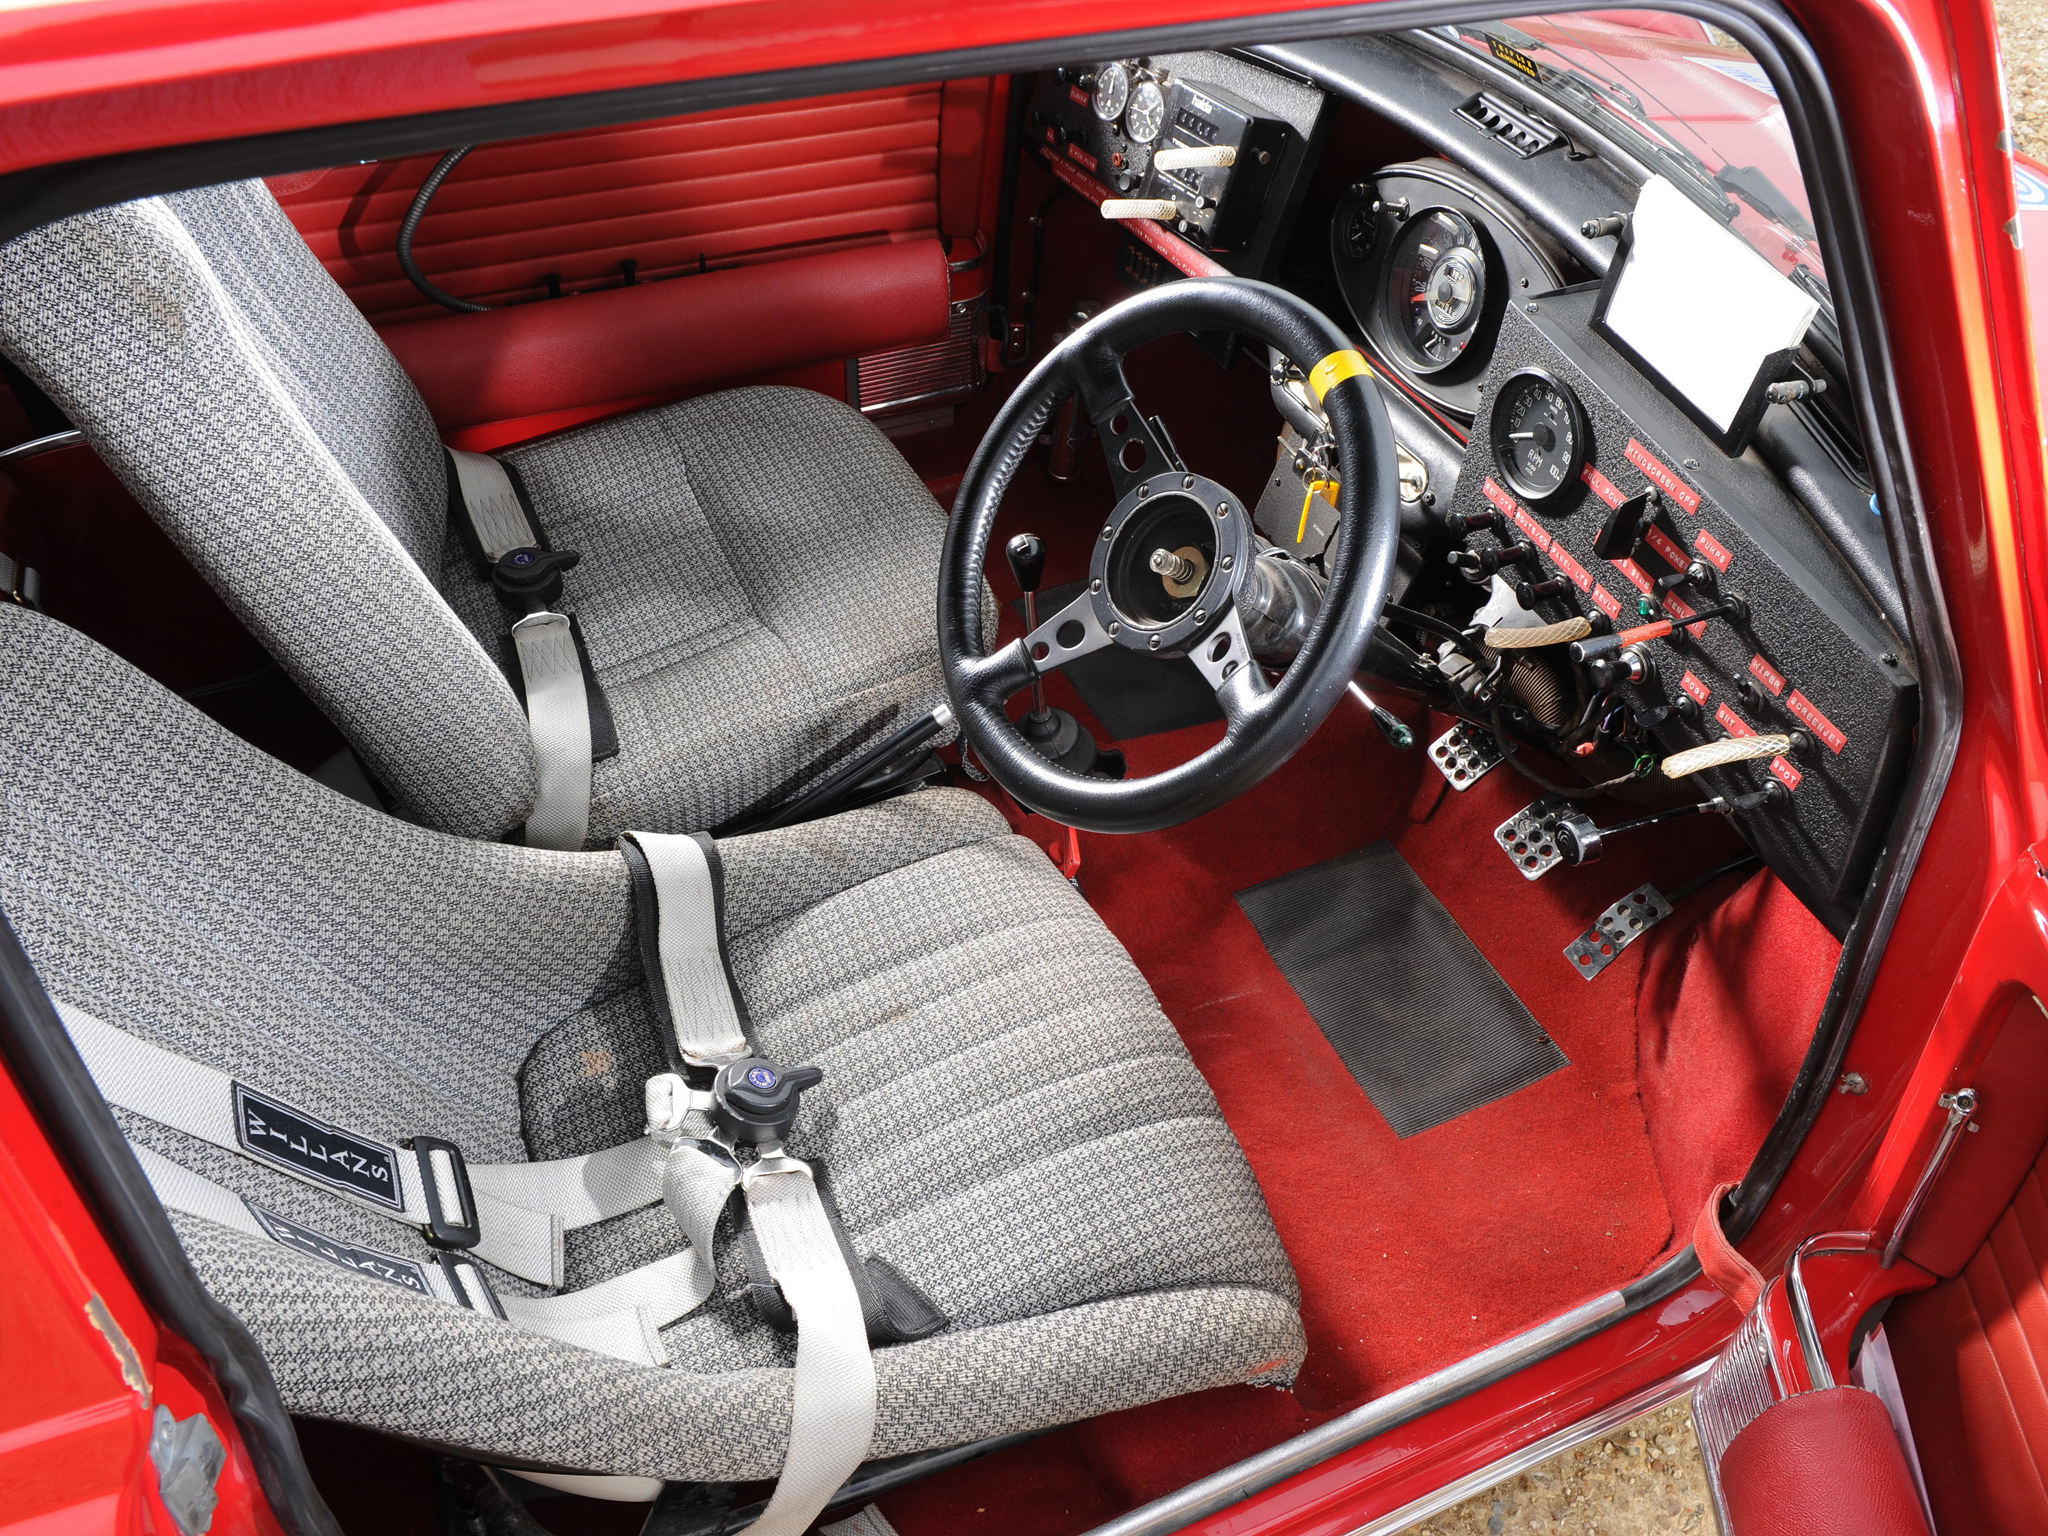 1964 morris mini cooper s rally ado15 race racing classic cooper s interior g wallpaper. Black Bedroom Furniture Sets. Home Design Ideas